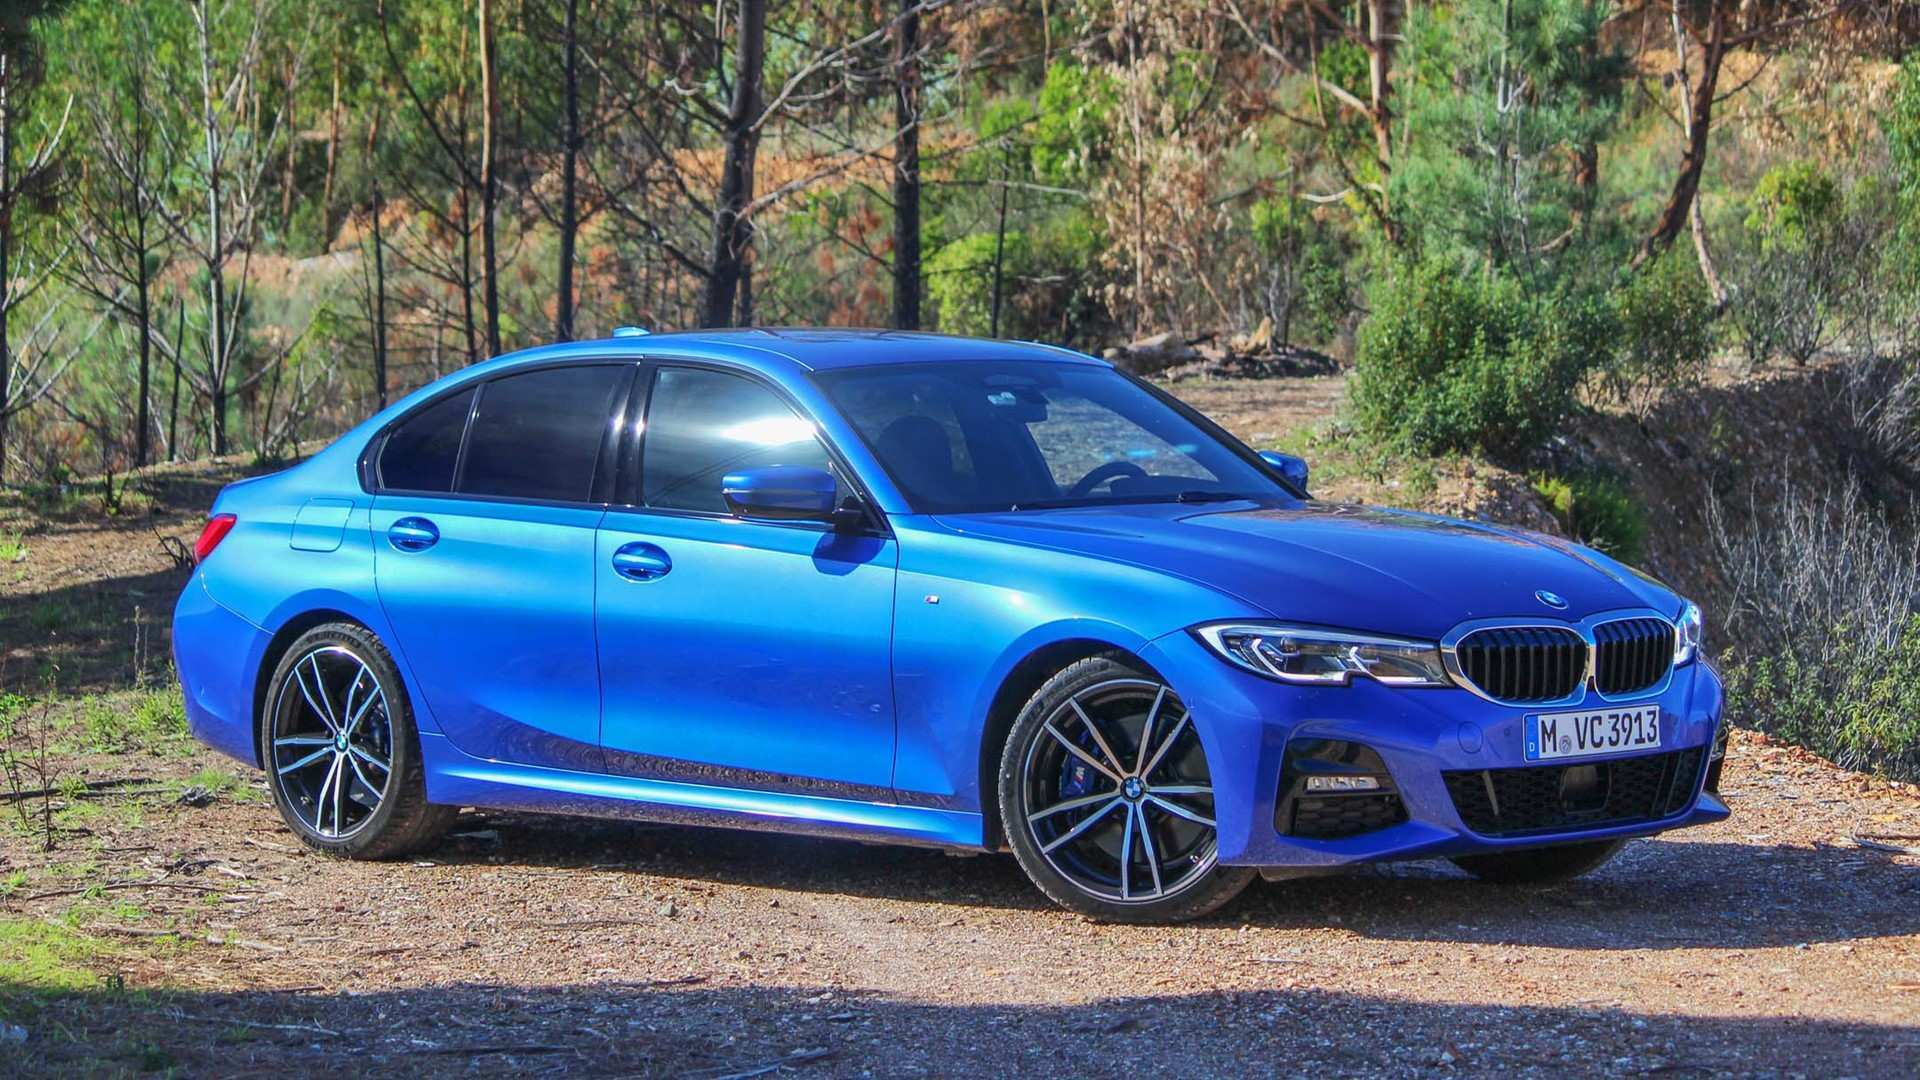 61 Gallery of The 2019 Bmw 3 Series Manual Transmission First Drive Engine with The 2019 Bmw 3 Series Manual Transmission First Drive